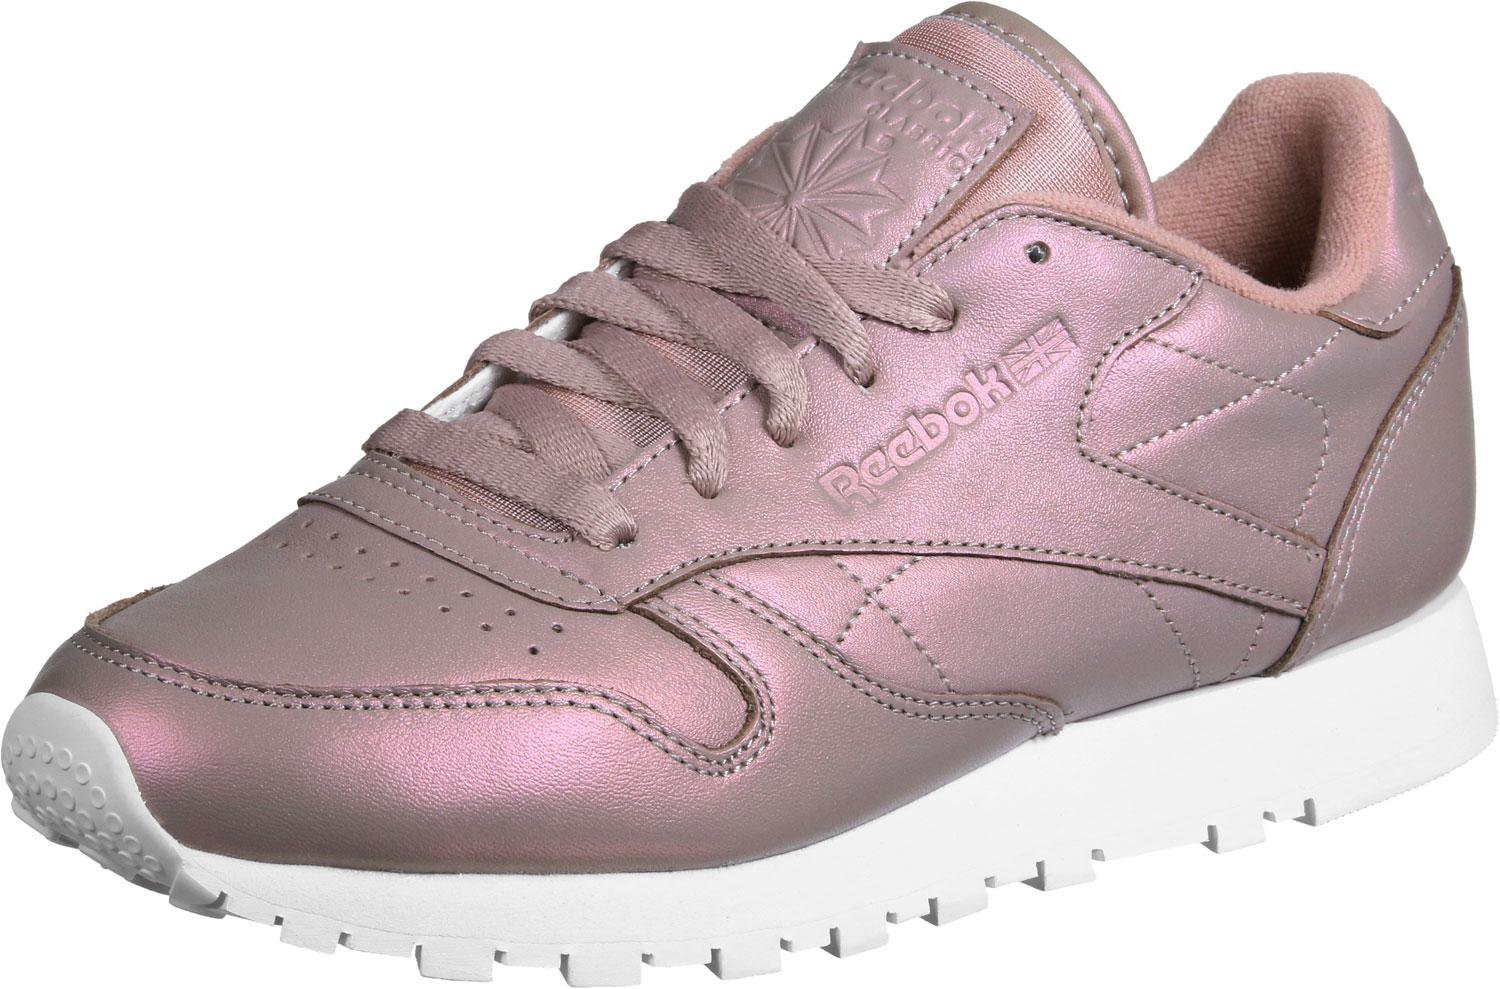 Reebok Classic Leather Pearlized Women